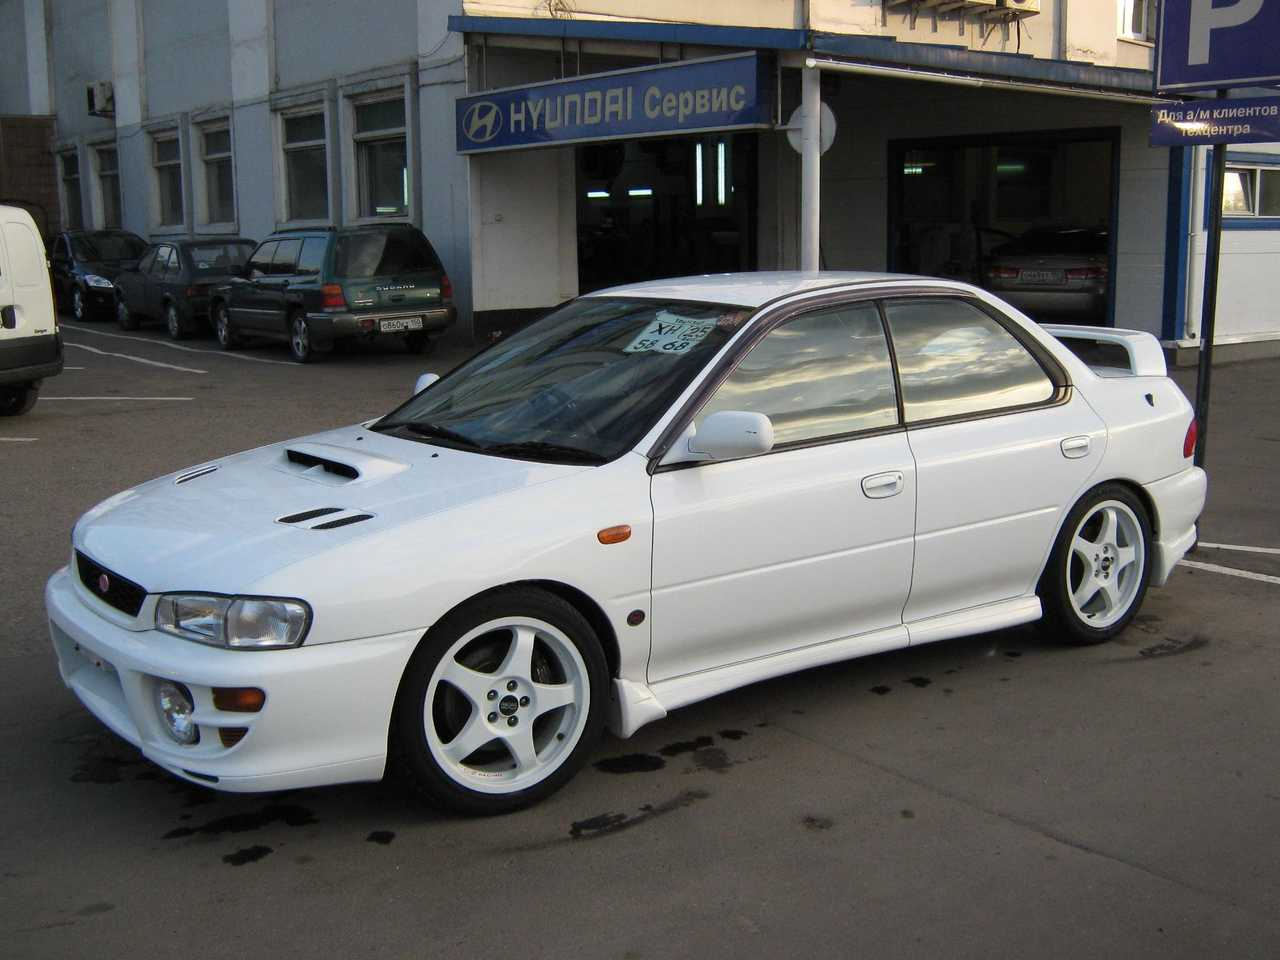 1999 subaru impreza wrx sti images 2000cc gasoline manual for sale. Black Bedroom Furniture Sets. Home Design Ideas